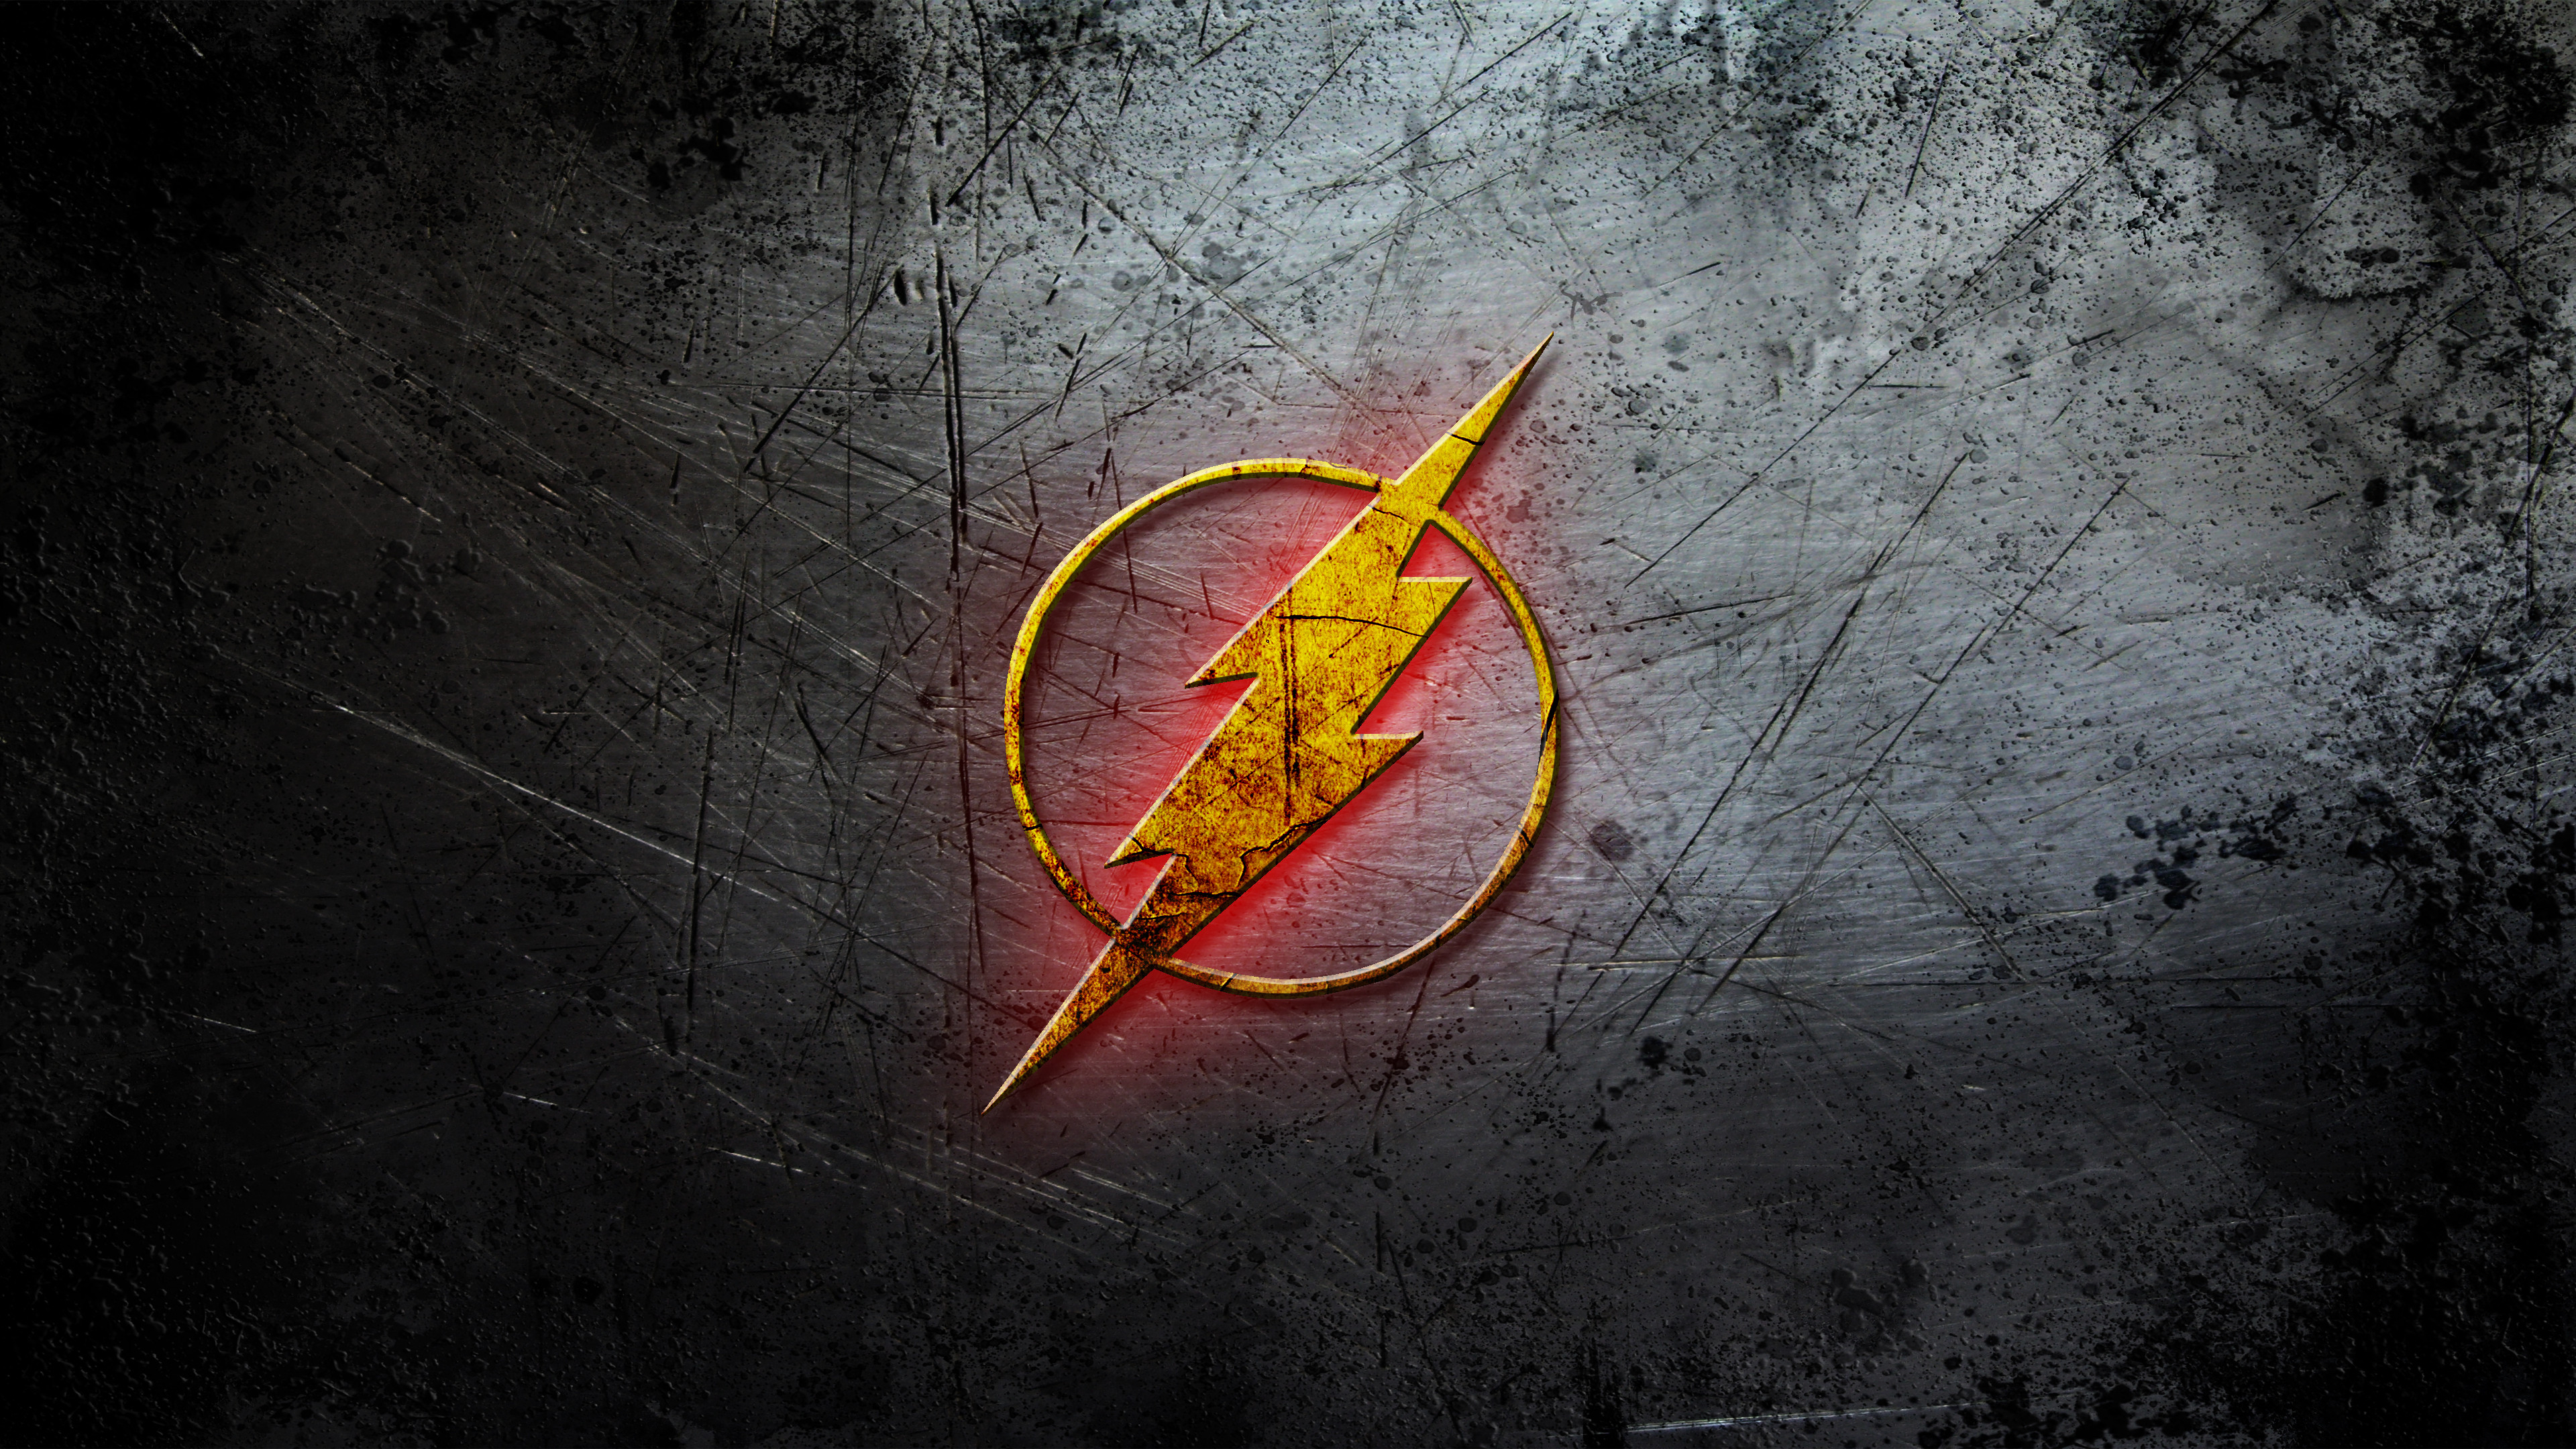 The Flash Desktop Wallpaper